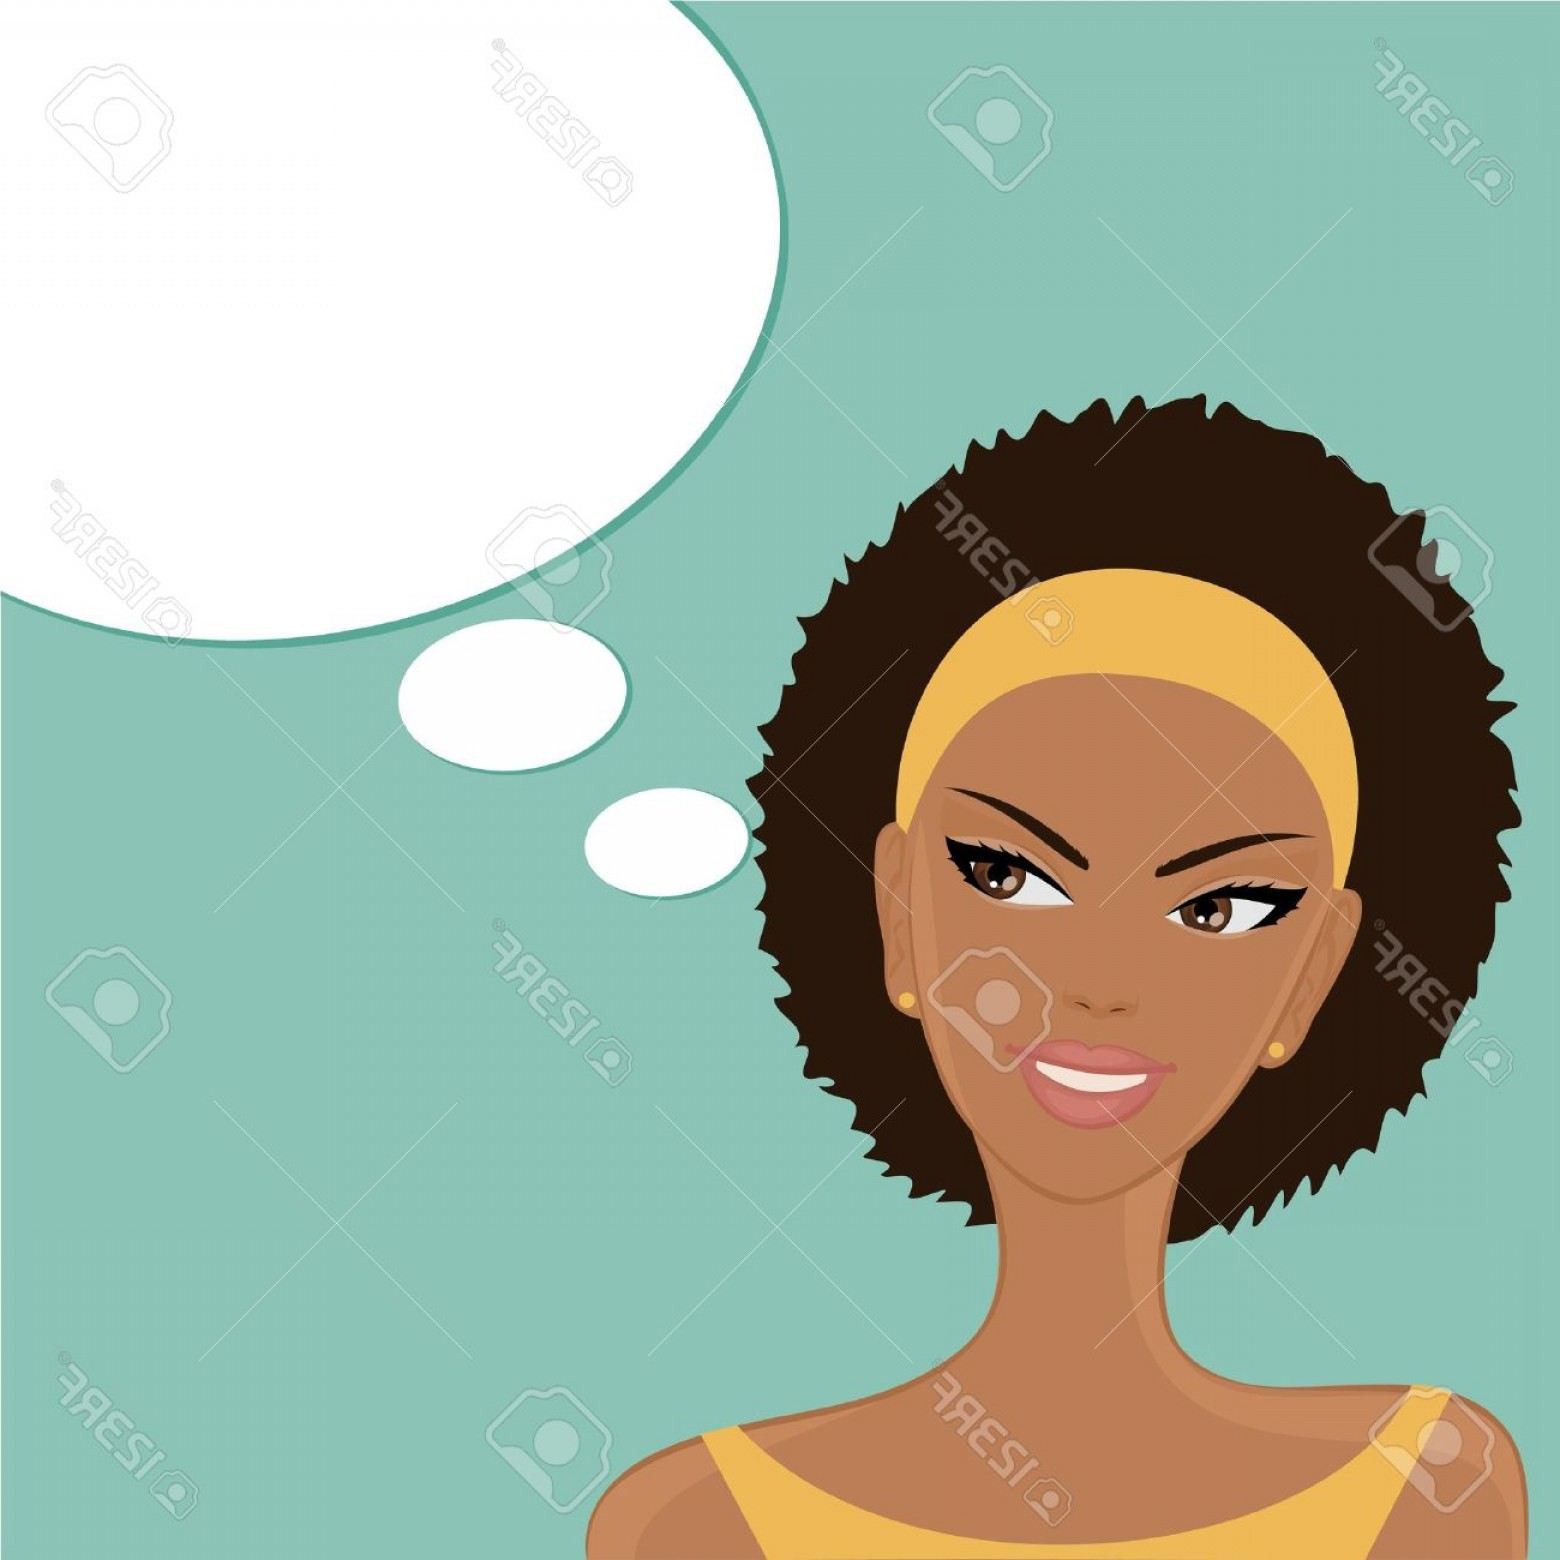 Lady Face Layers Vector: Photovector Illustration Of A Beautiful Smiling Afro American Girl With A Blank Thought Speech Bubble On